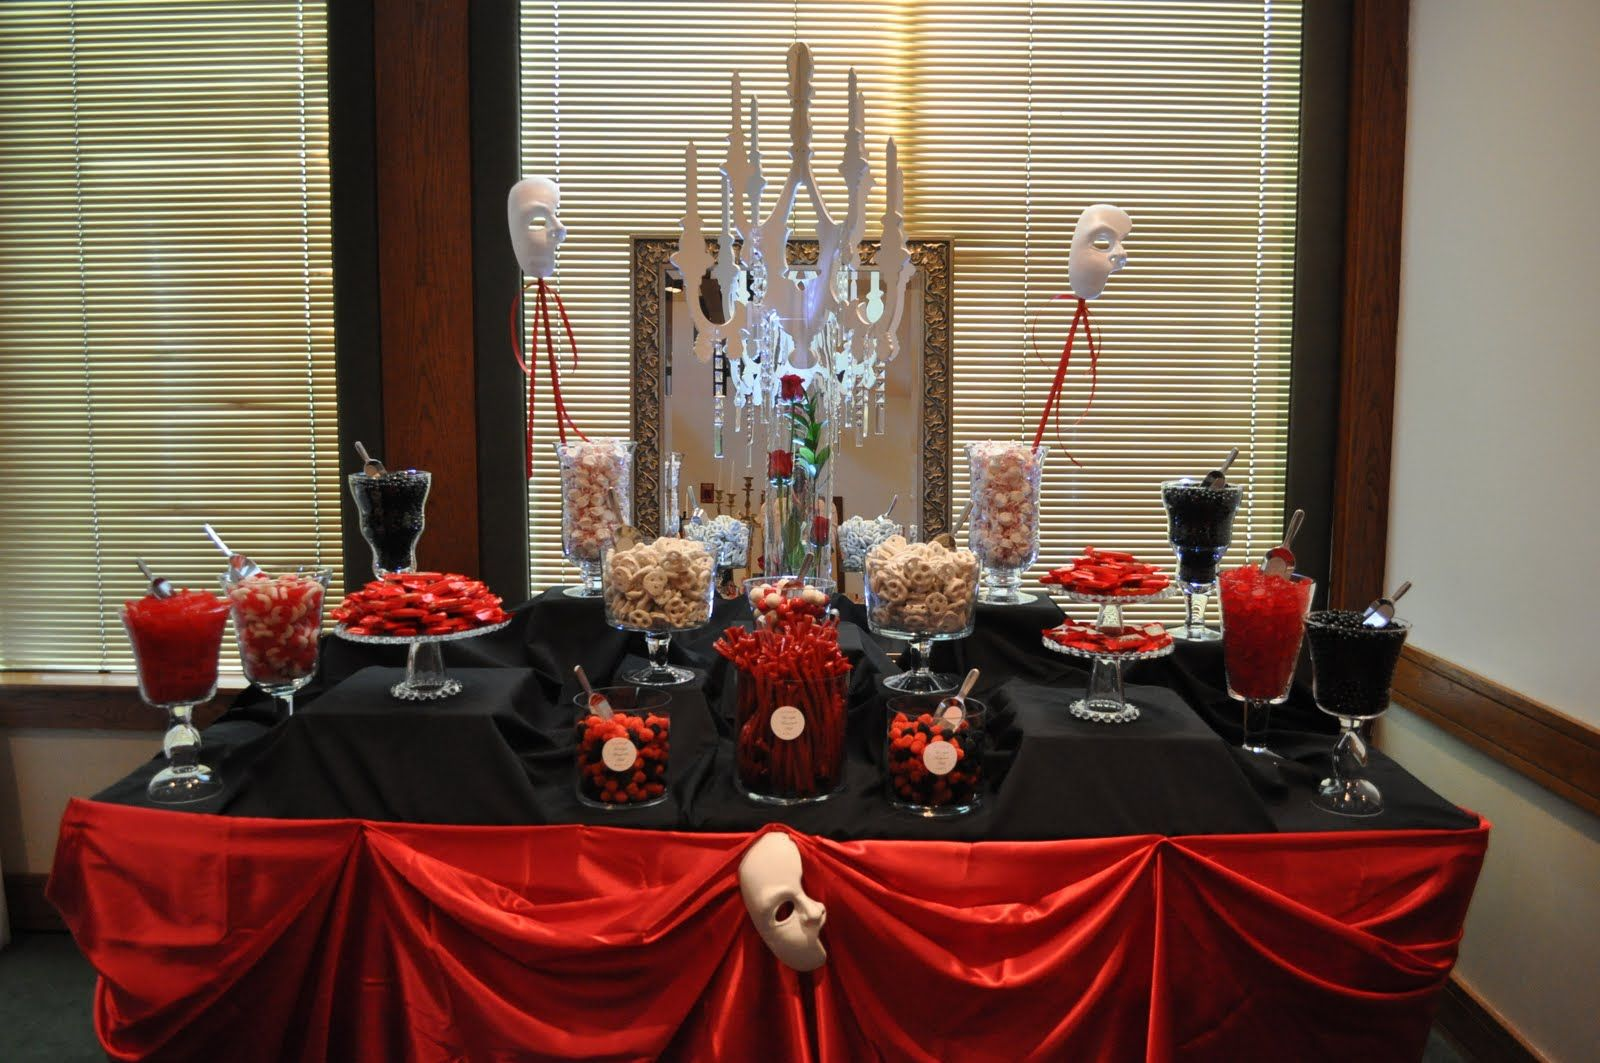 Halloween food table decorations - 9 Great Halloween Party Candy Display Ideas